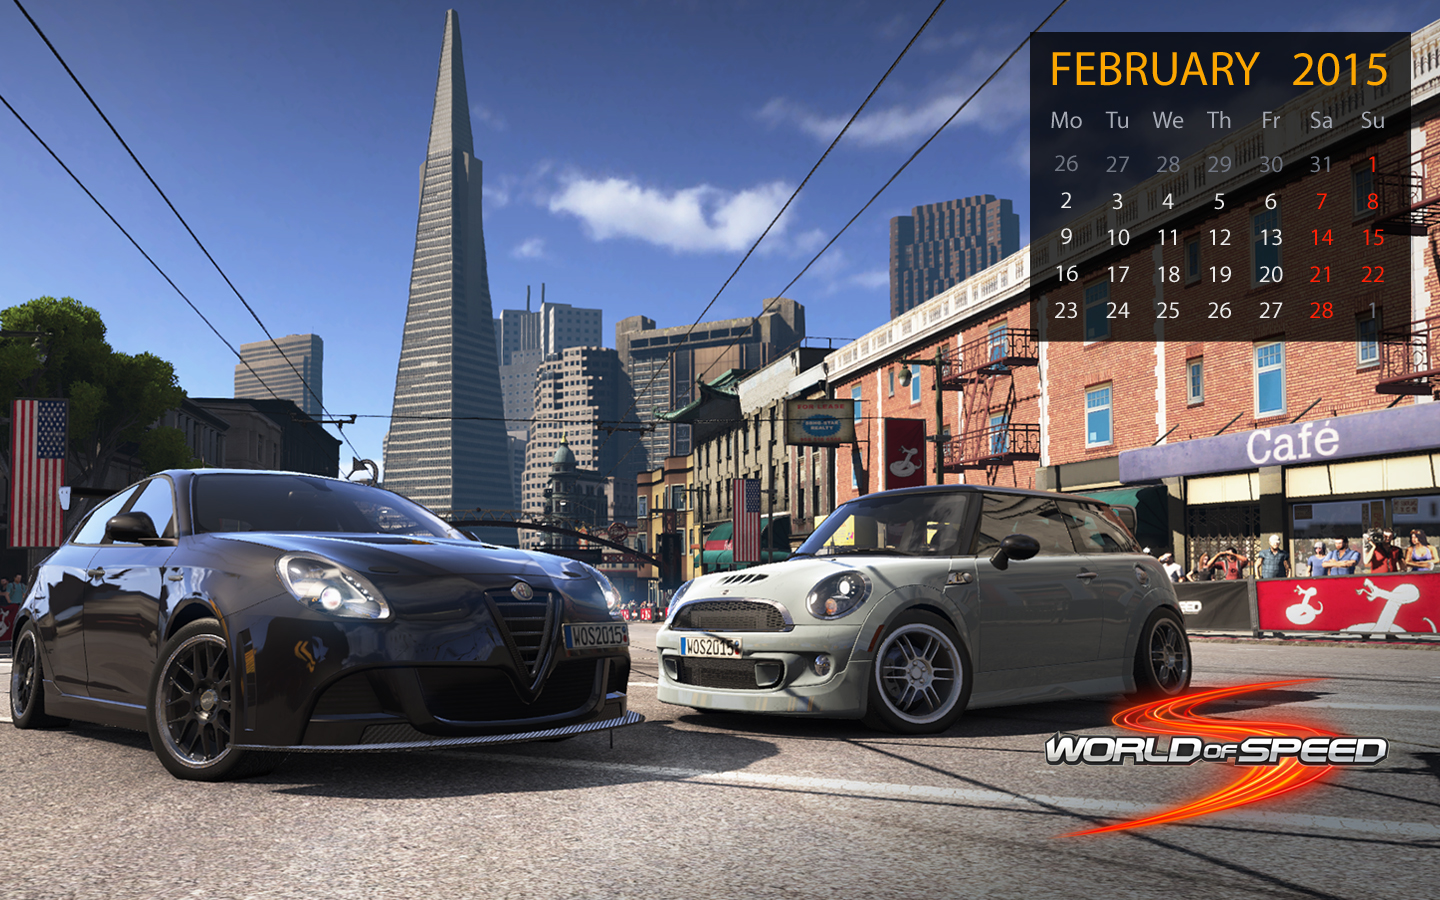 World of Speed February Wallpapers 1440x900